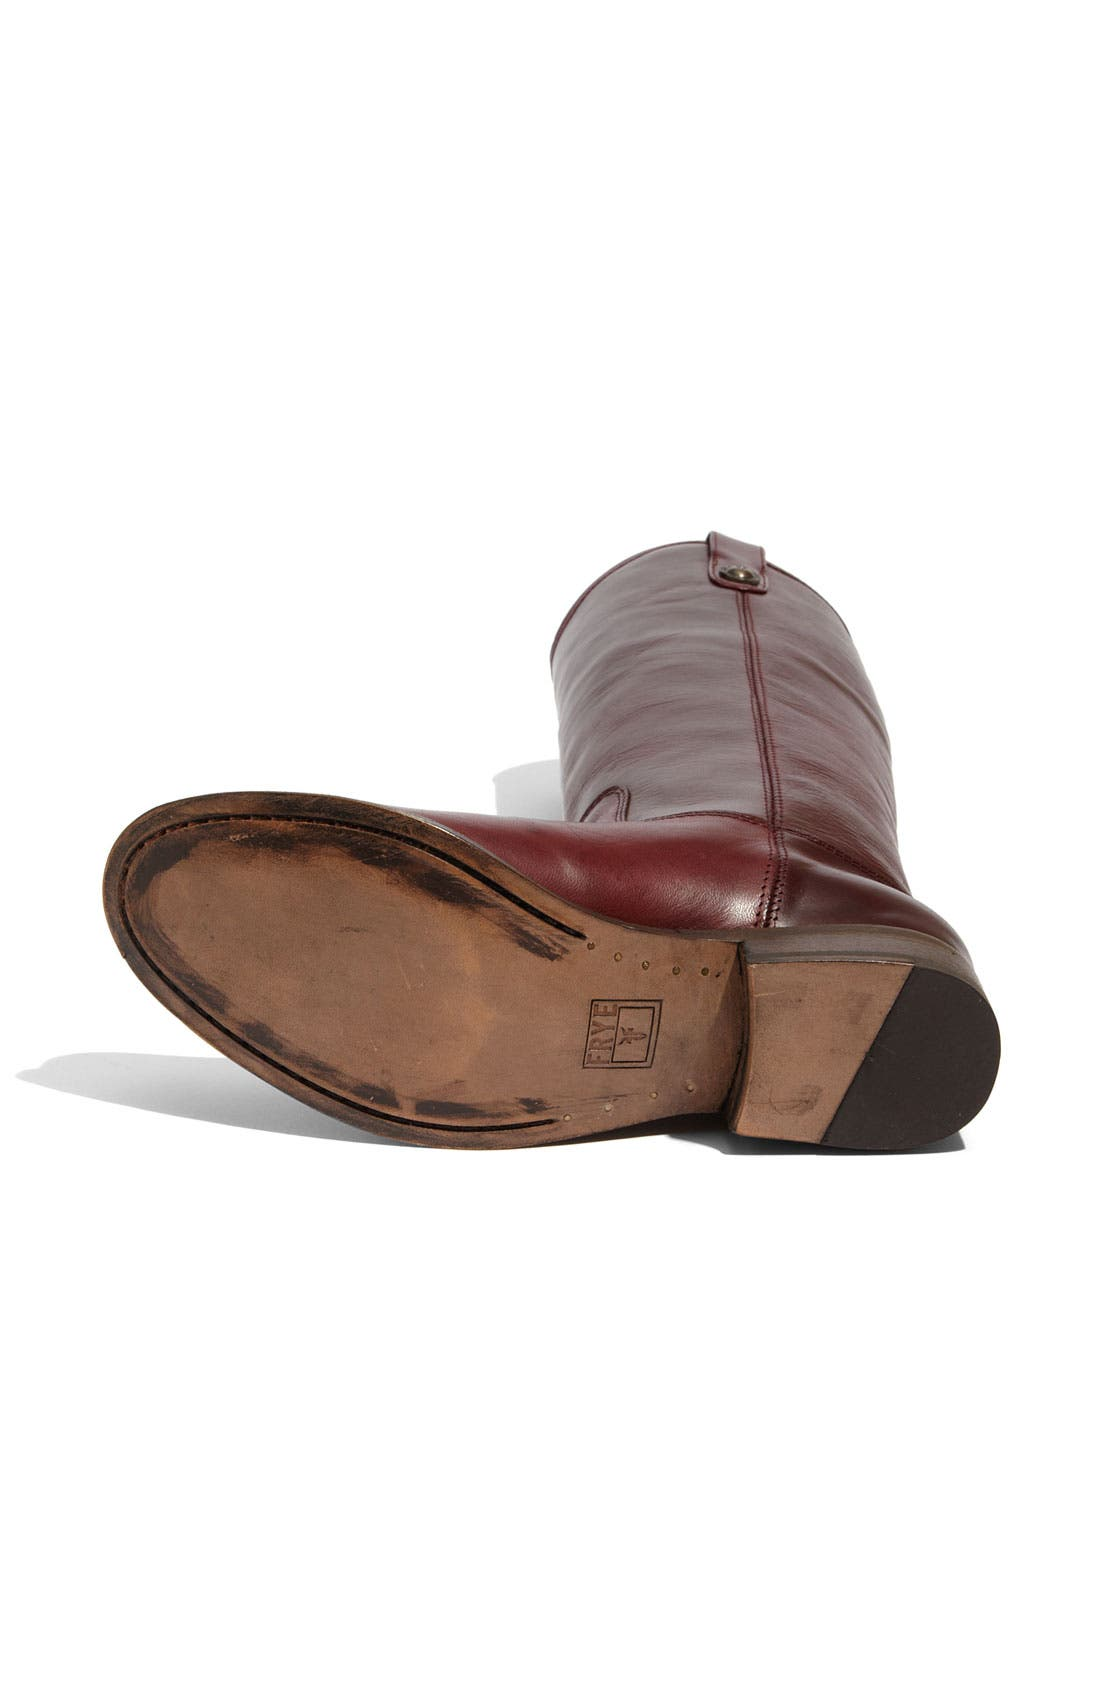 'Melissa Button' Leather Riding Boot,                             Alternate thumbnail 123, color,